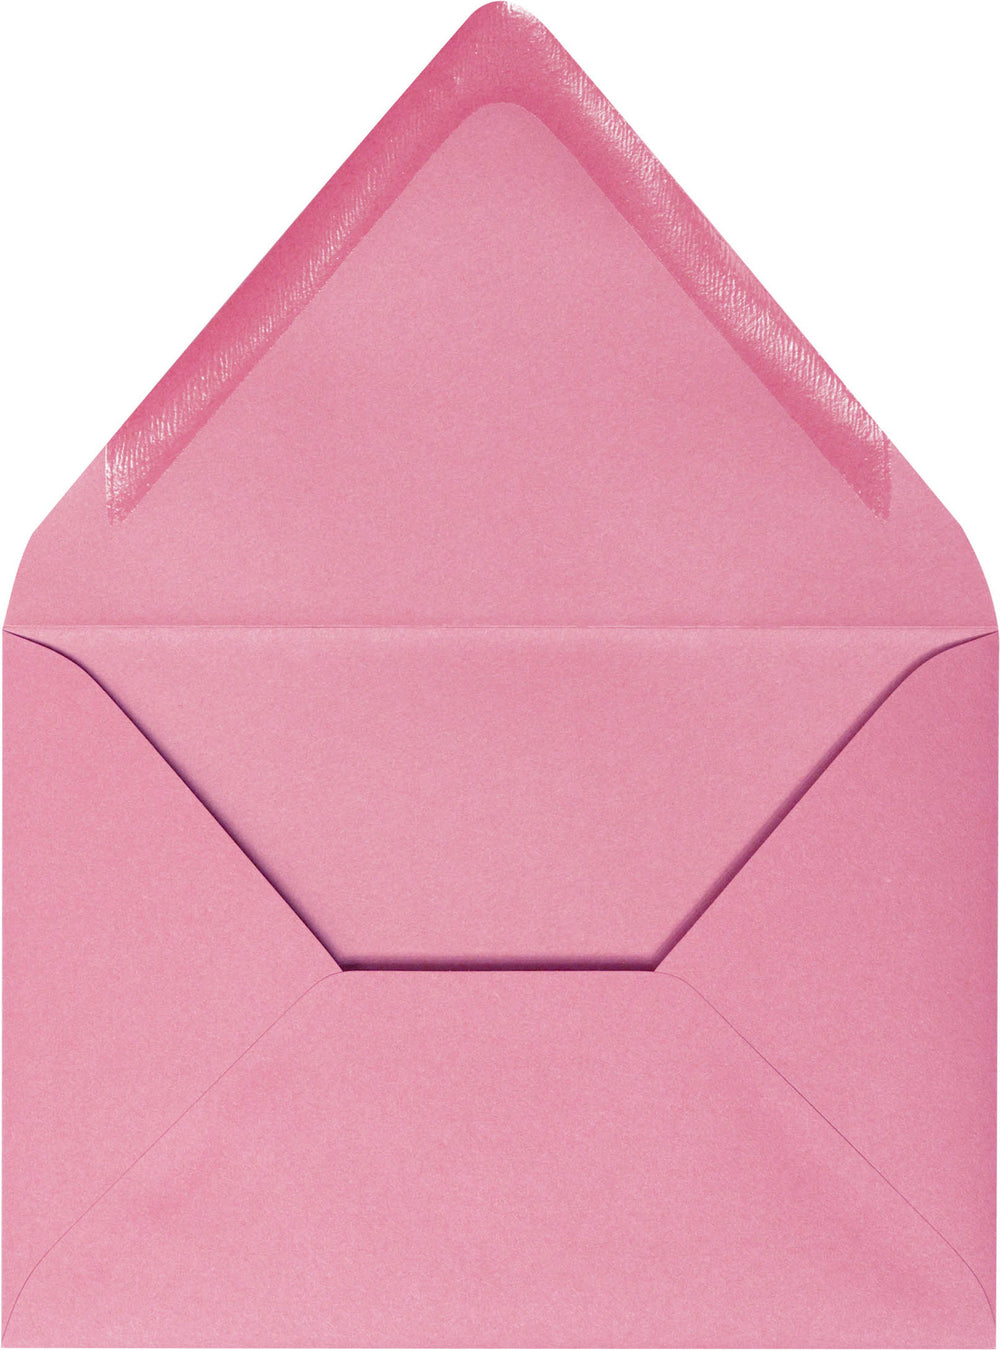 "A-7 Cotton Candy Pink Solid Euro Flap Envelopes (5 1/4"" x 7 1/4"")"